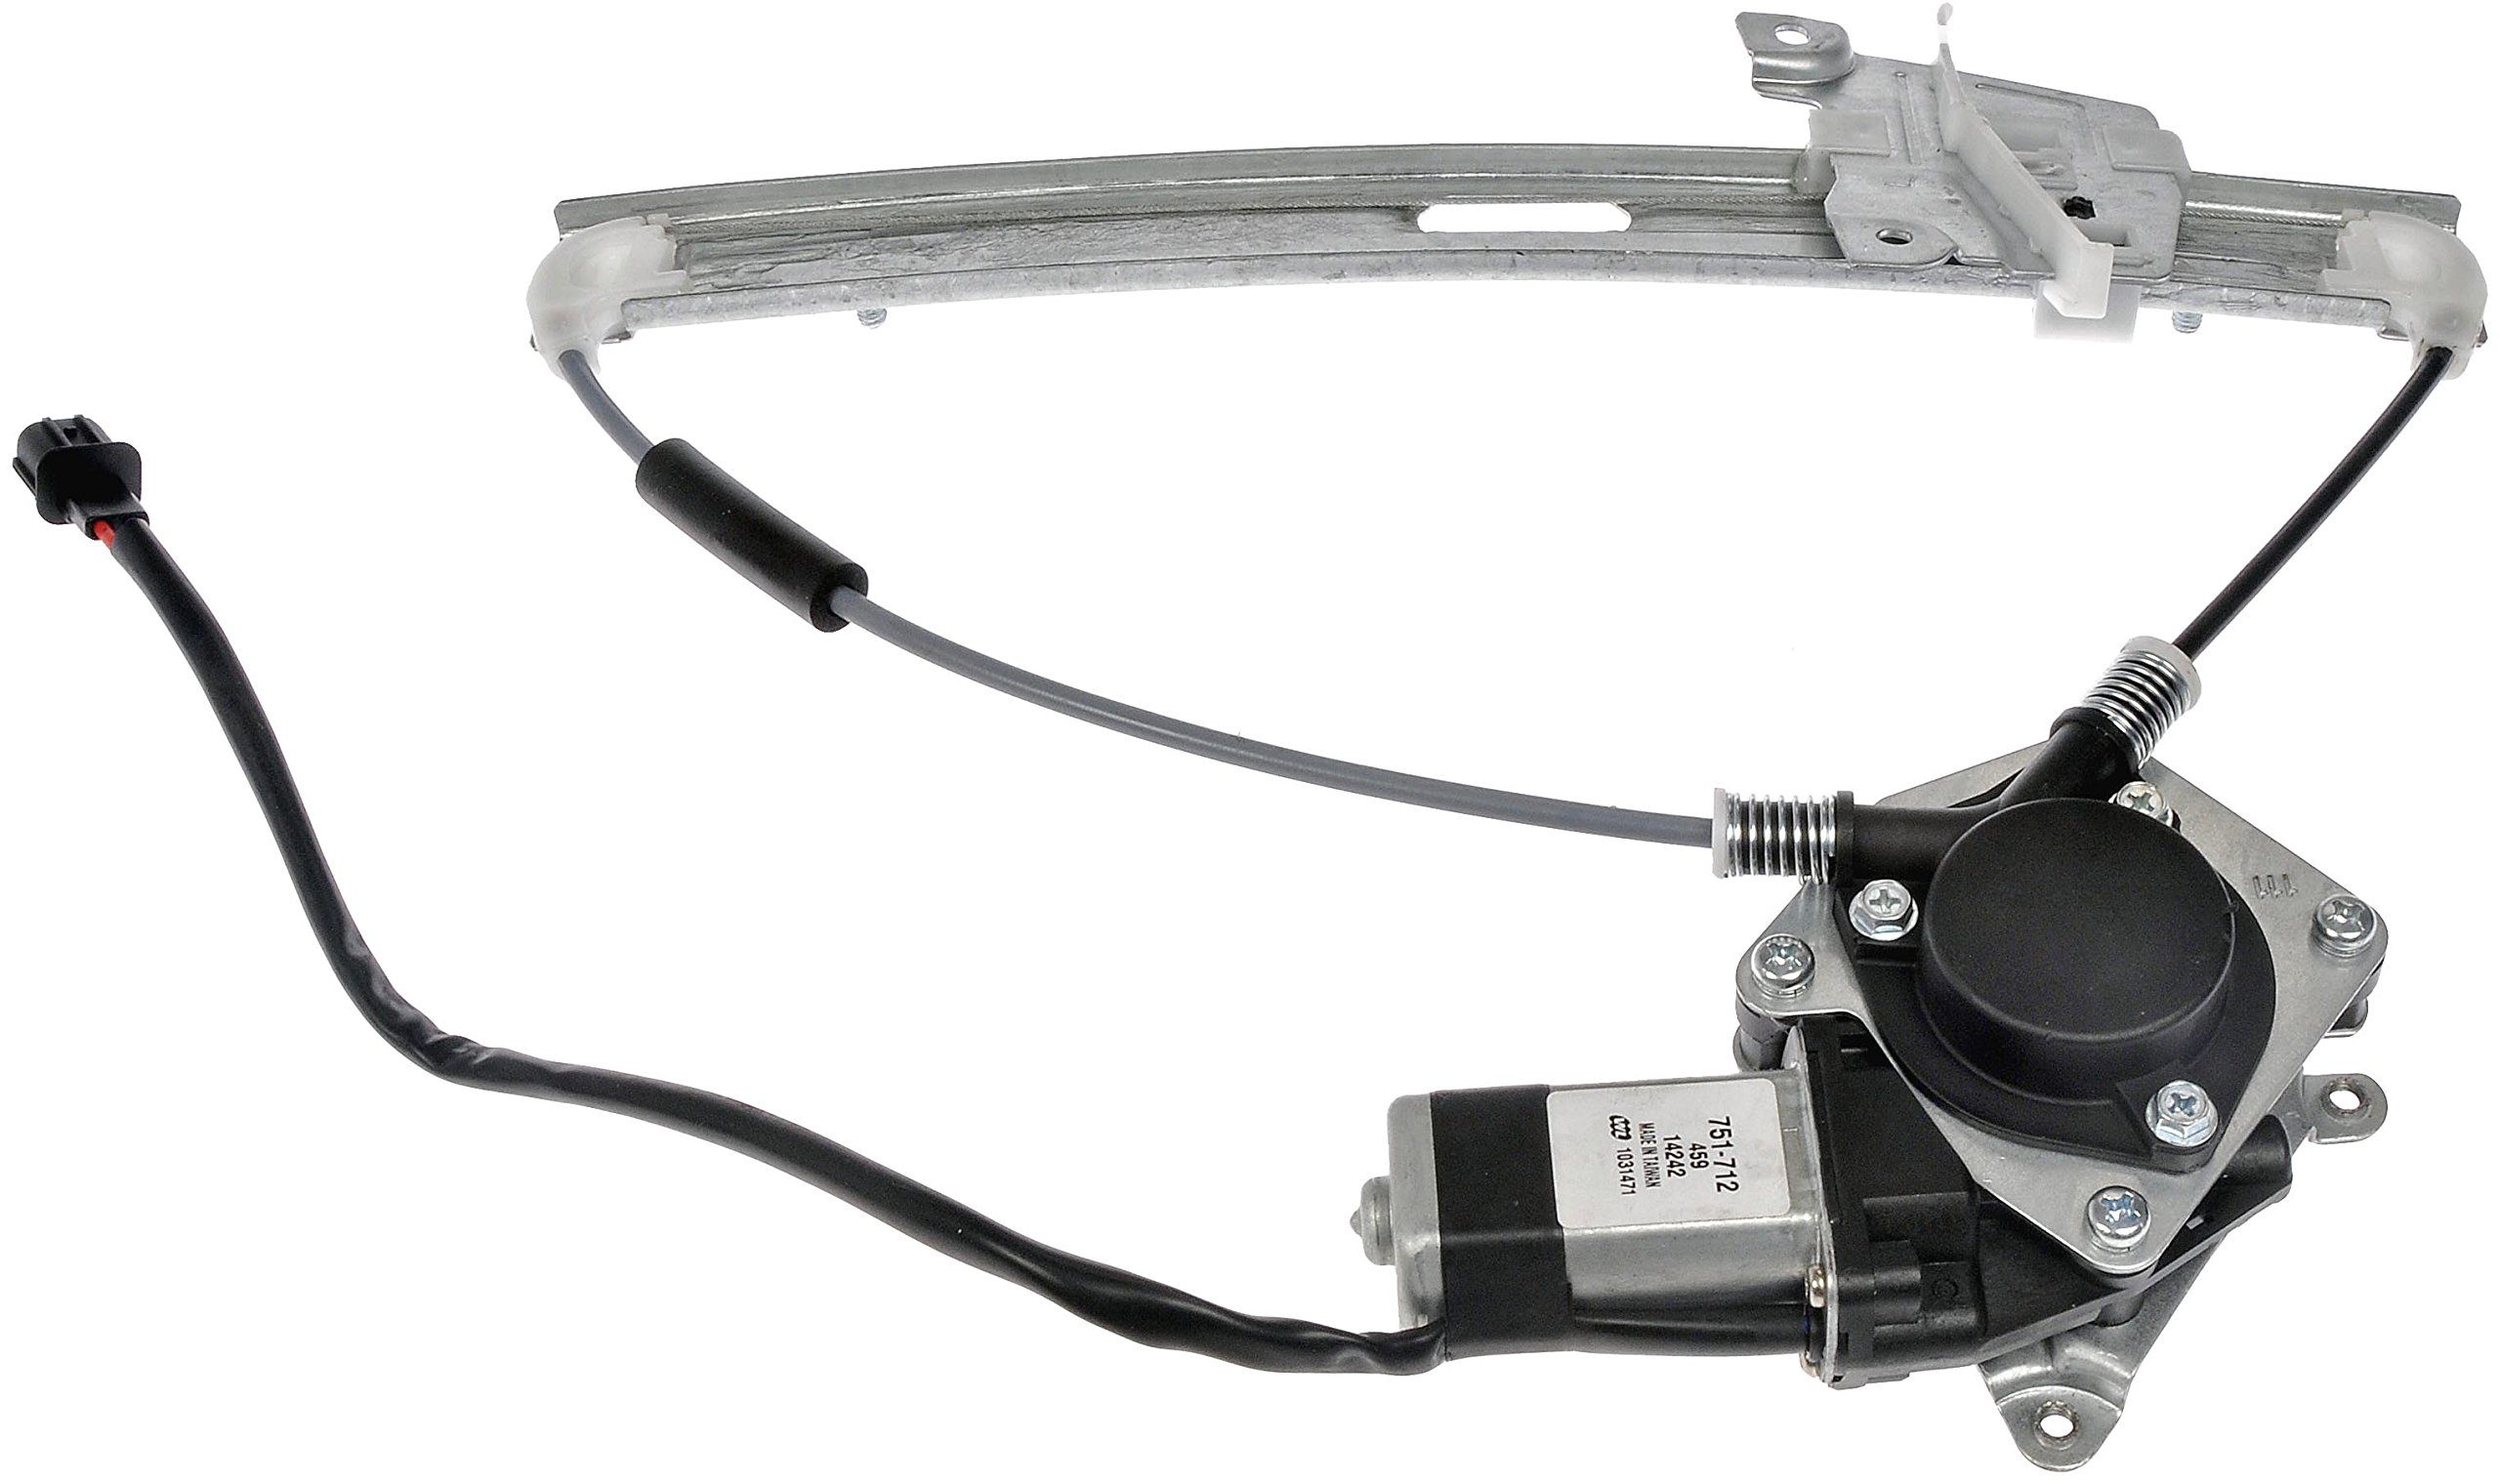 Dorman 751-712 Ford/Mercury Rear Driver Side Power Window Regulator with Motor by Dorman